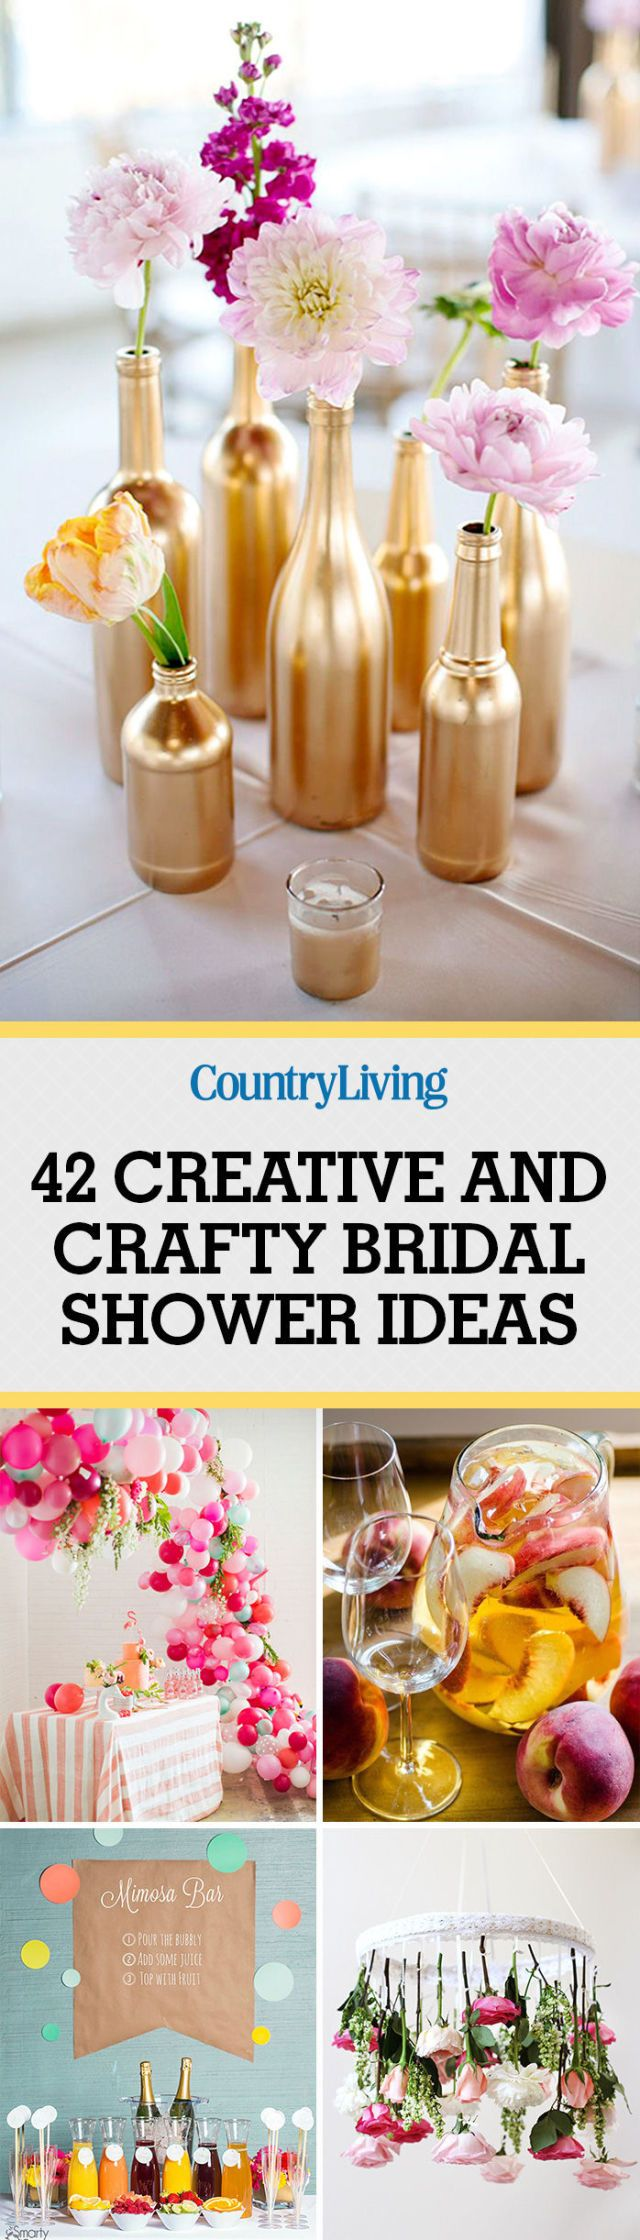 Pin these ideas!   - CountryLiving.com